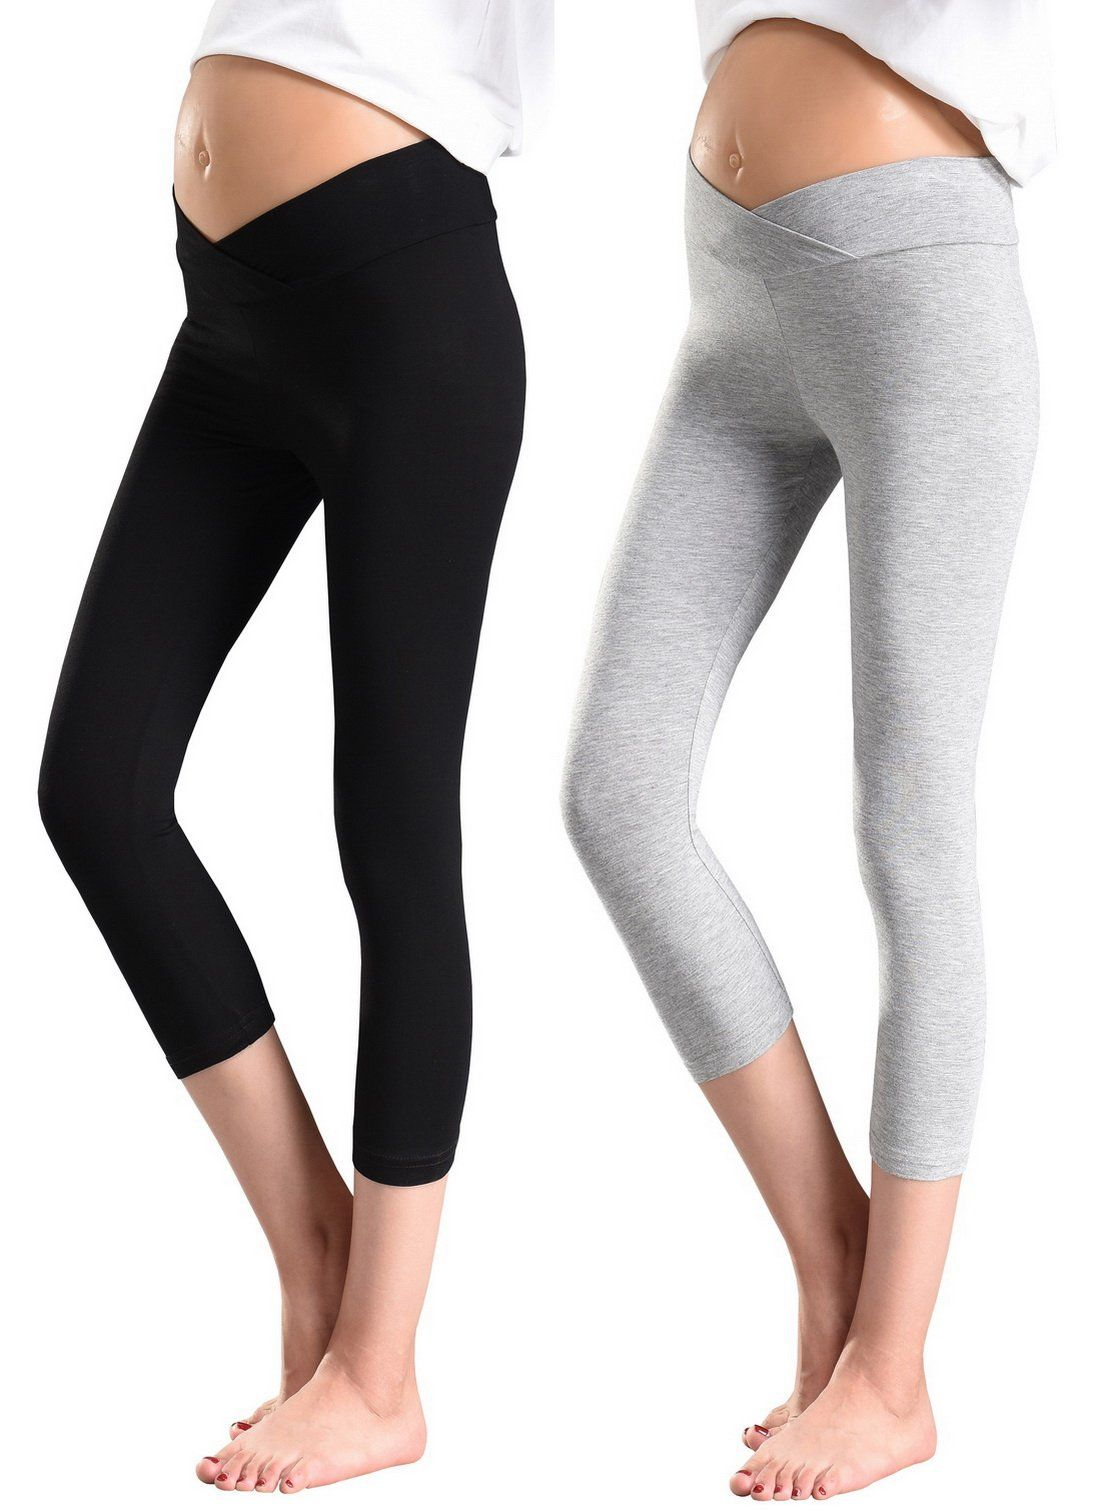 89526c6631bd3 pregnancy workout - Foucome 2 Pack Womens Under the Belly Super Soft  Support Maternity Leggings CapriBlack Gray *** More details can be found at  the picture ...